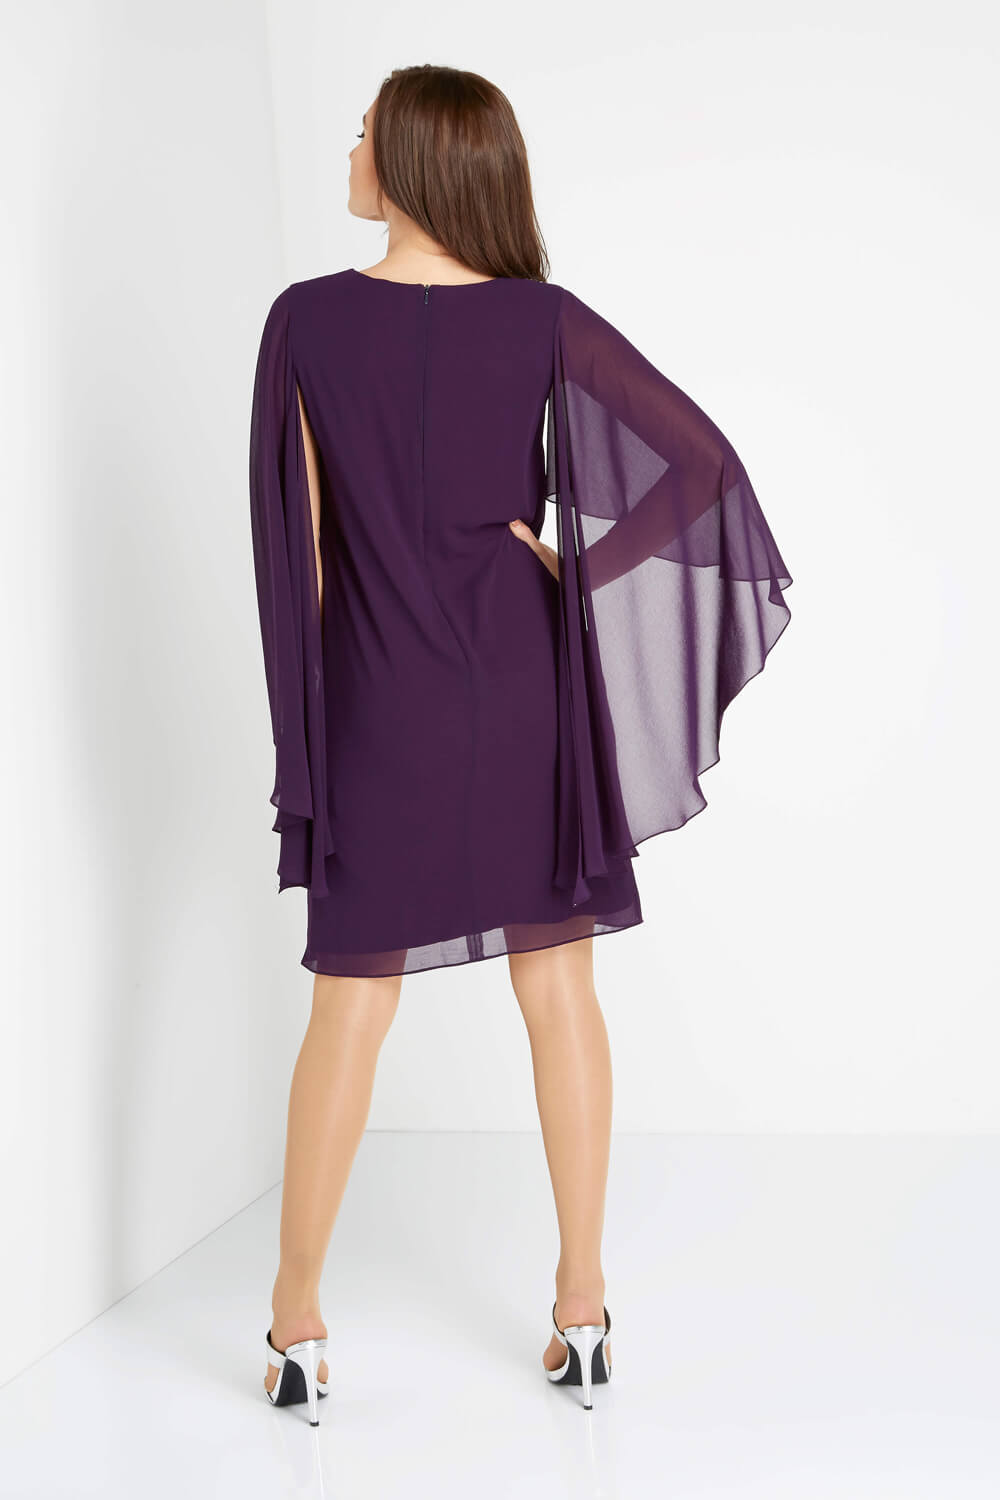 Roman-Originals-Ladies-Embellished-Chiffon-Cape-Dress-Purple thumbnail 8